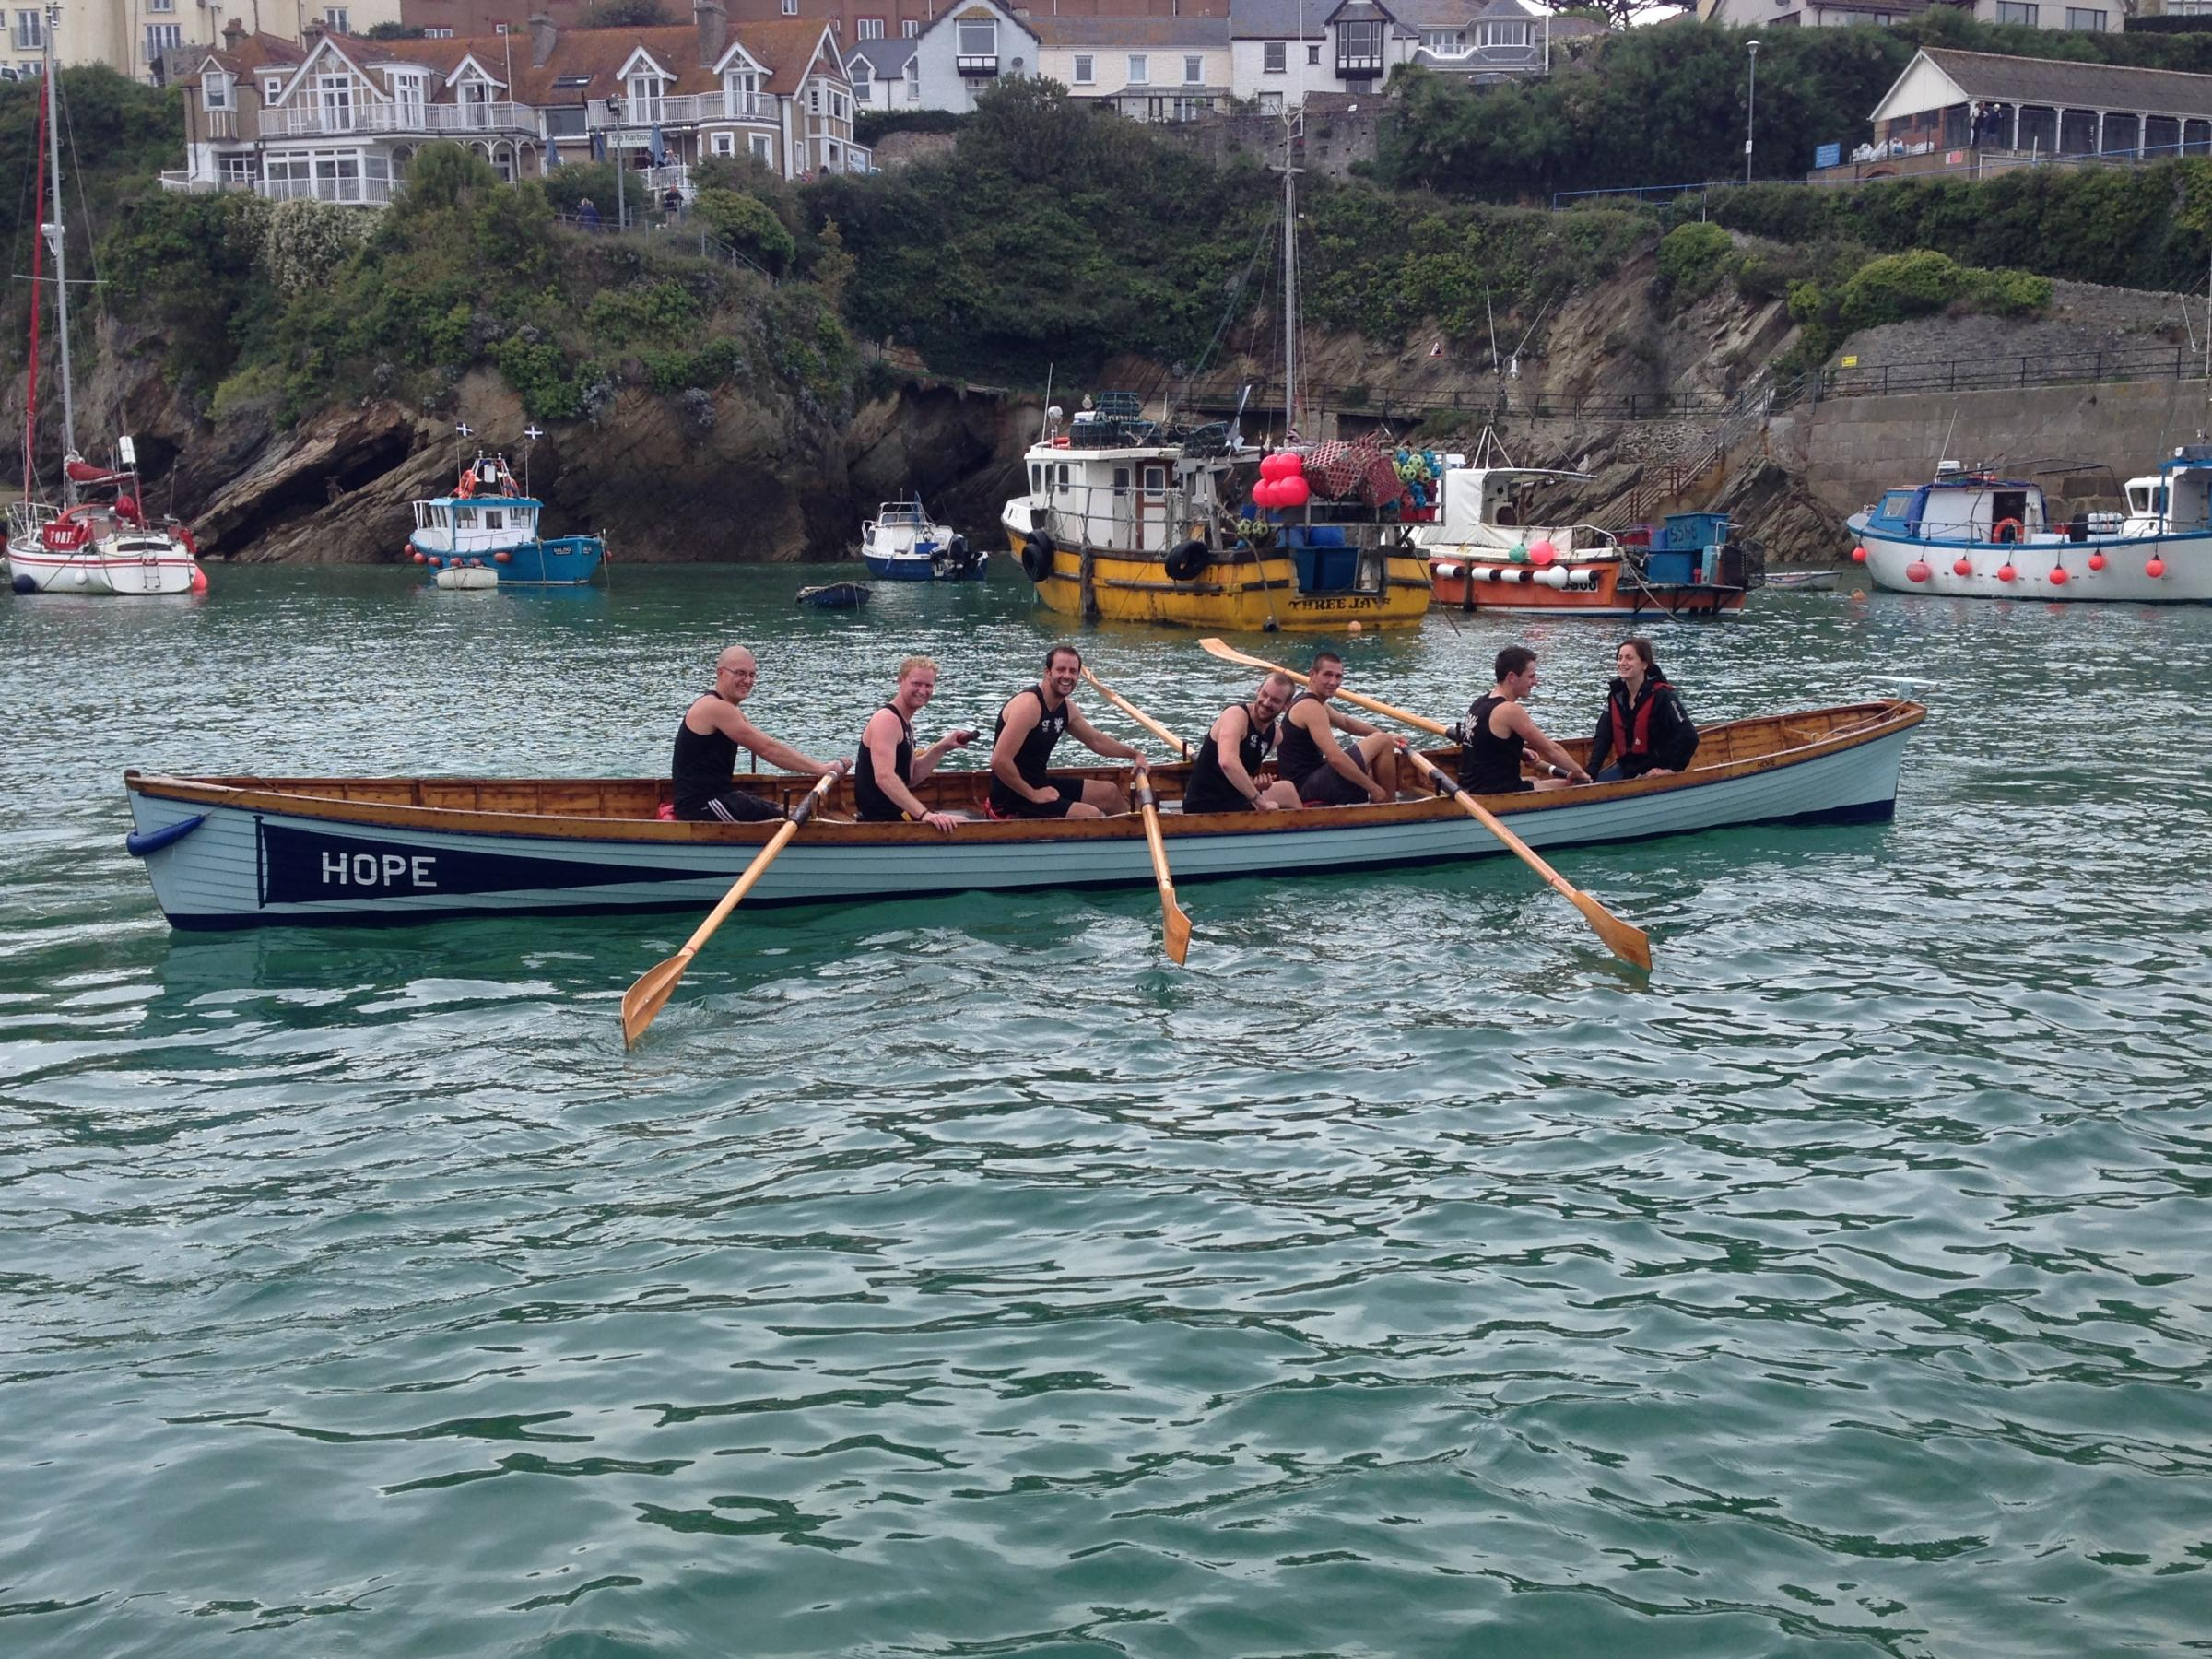 ROWING: Falmouth gig rowers looking to raise funds for new oars